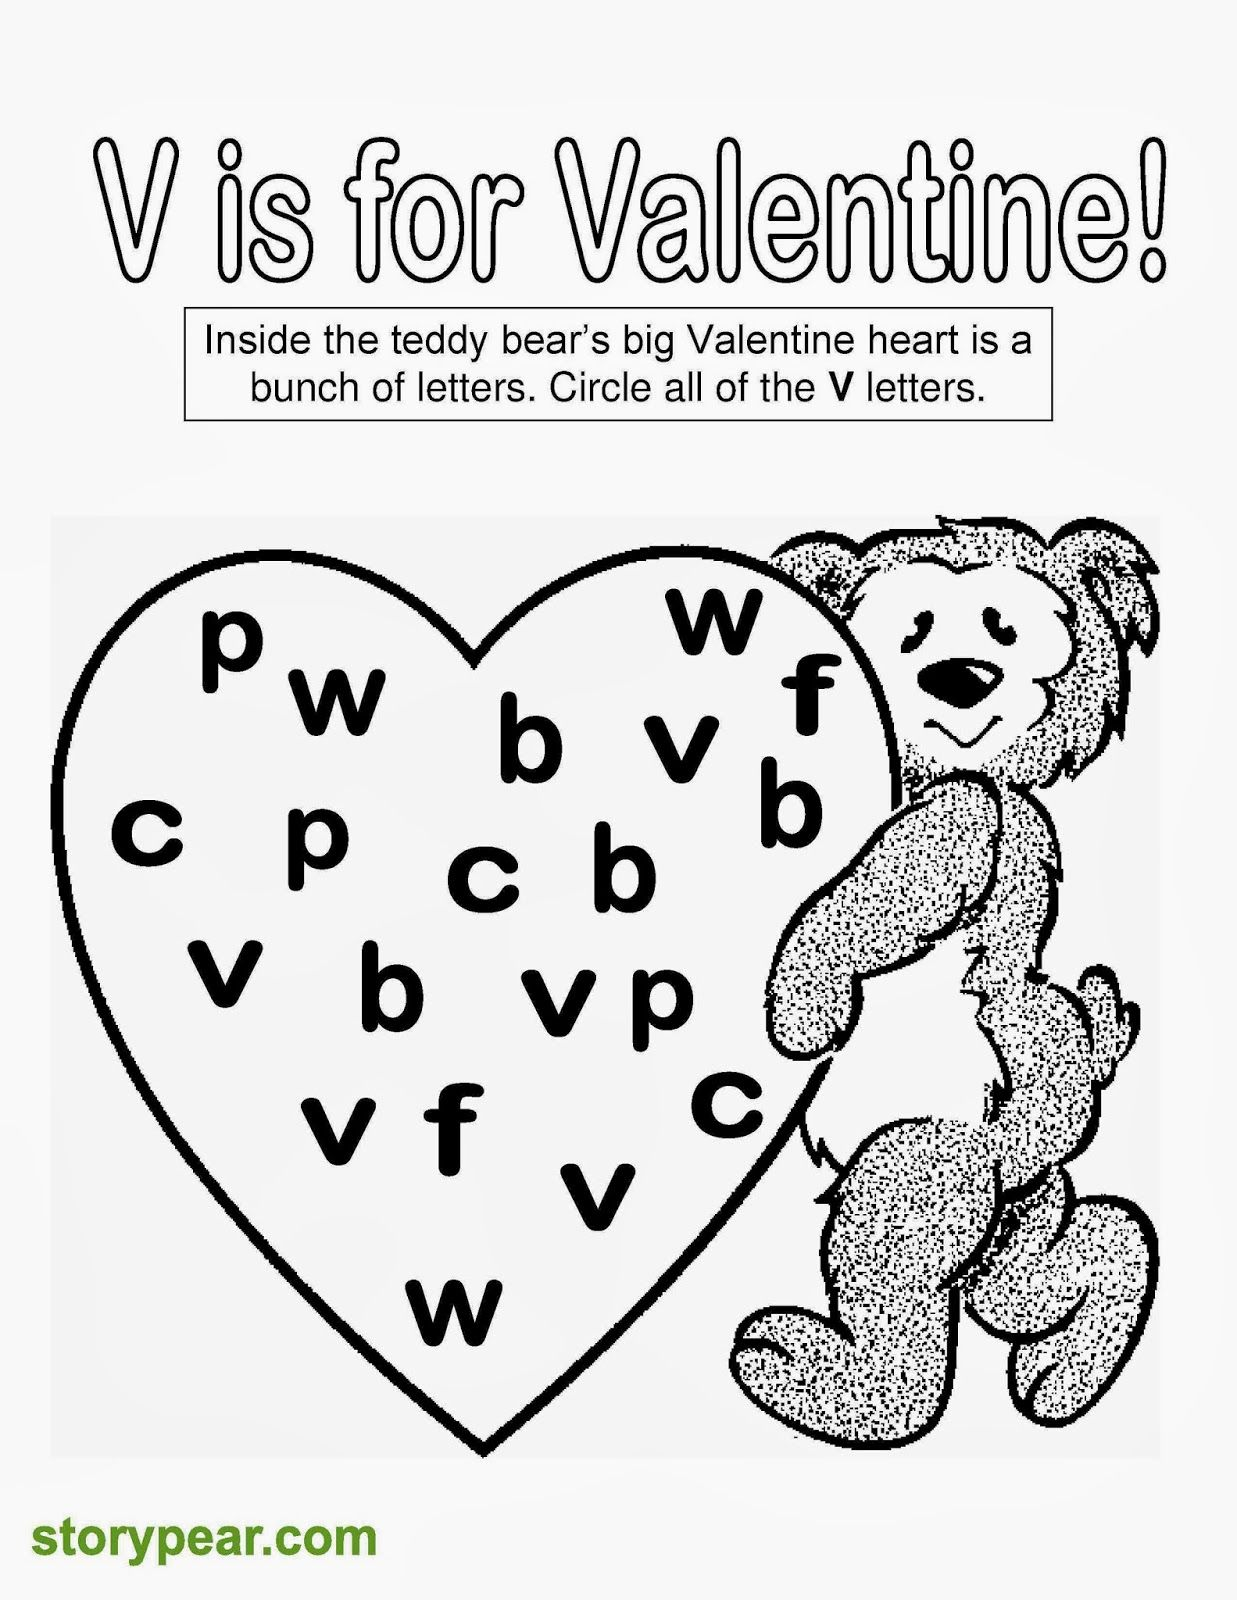 Story Pear Free Valentine Day S Printable Sheets For Preschoolers